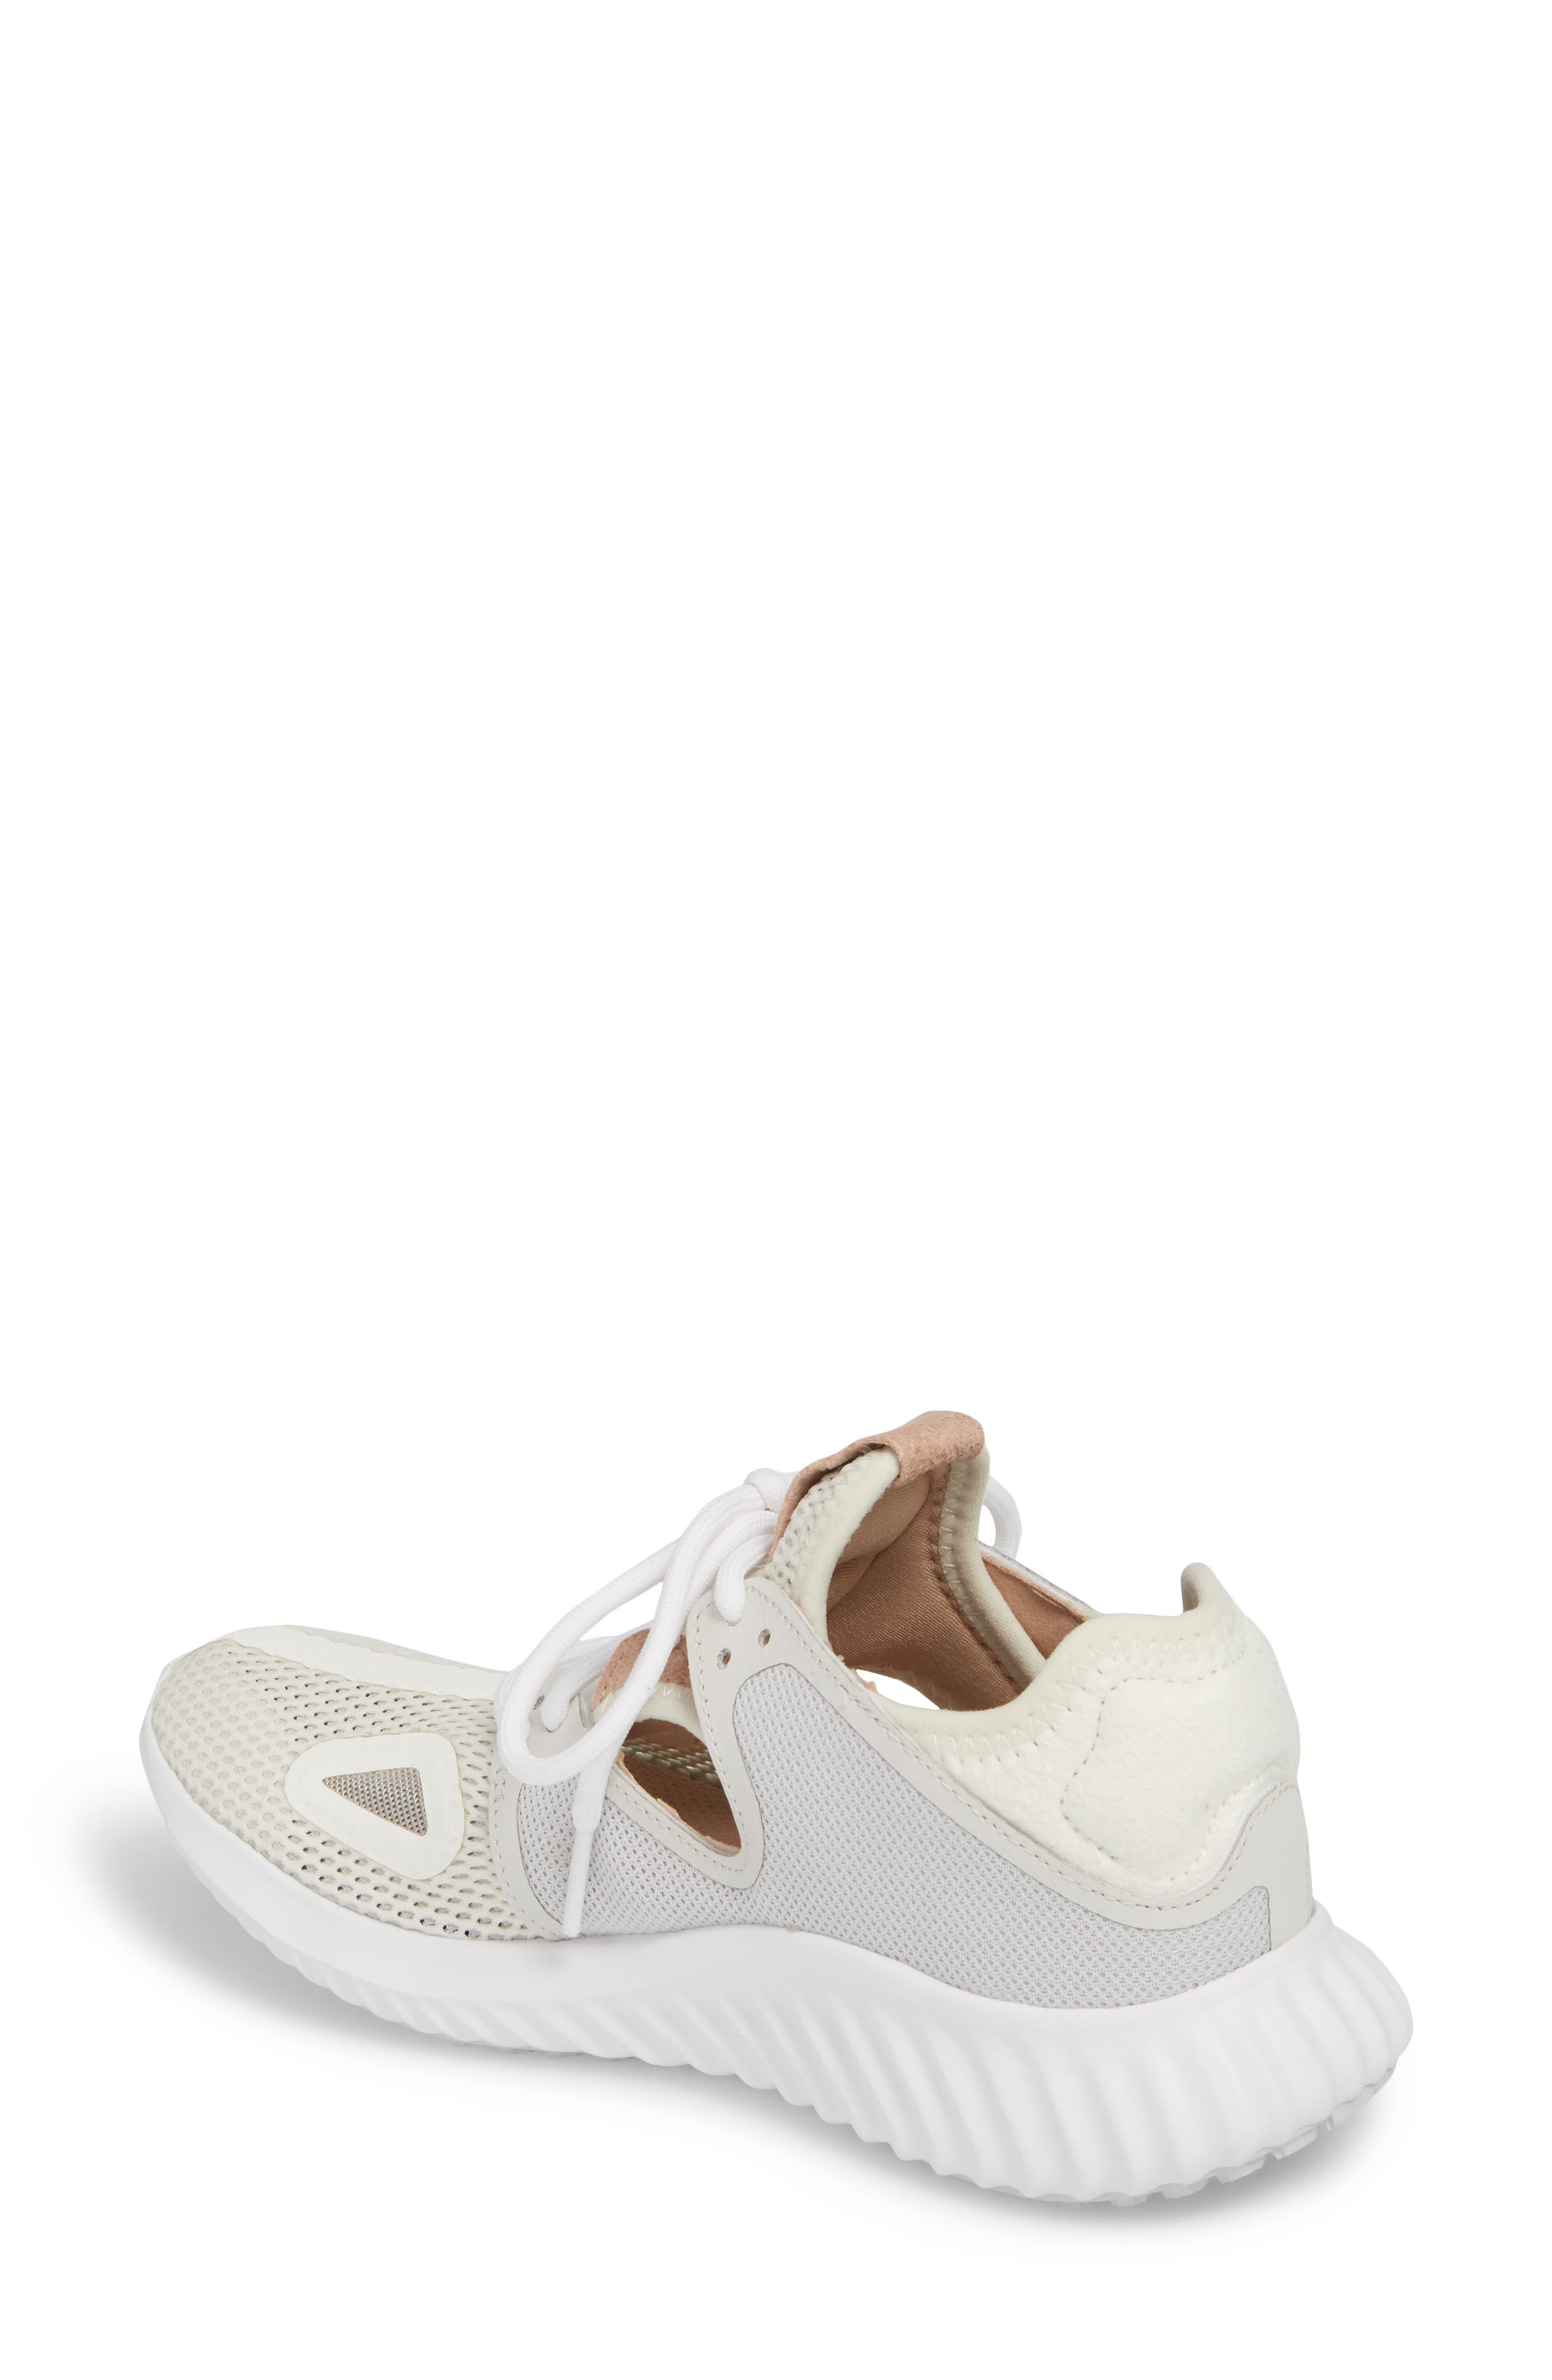 Run Lux Clima Running Shoe,                             Alternate thumbnail 2, color,                             Off White / Grey